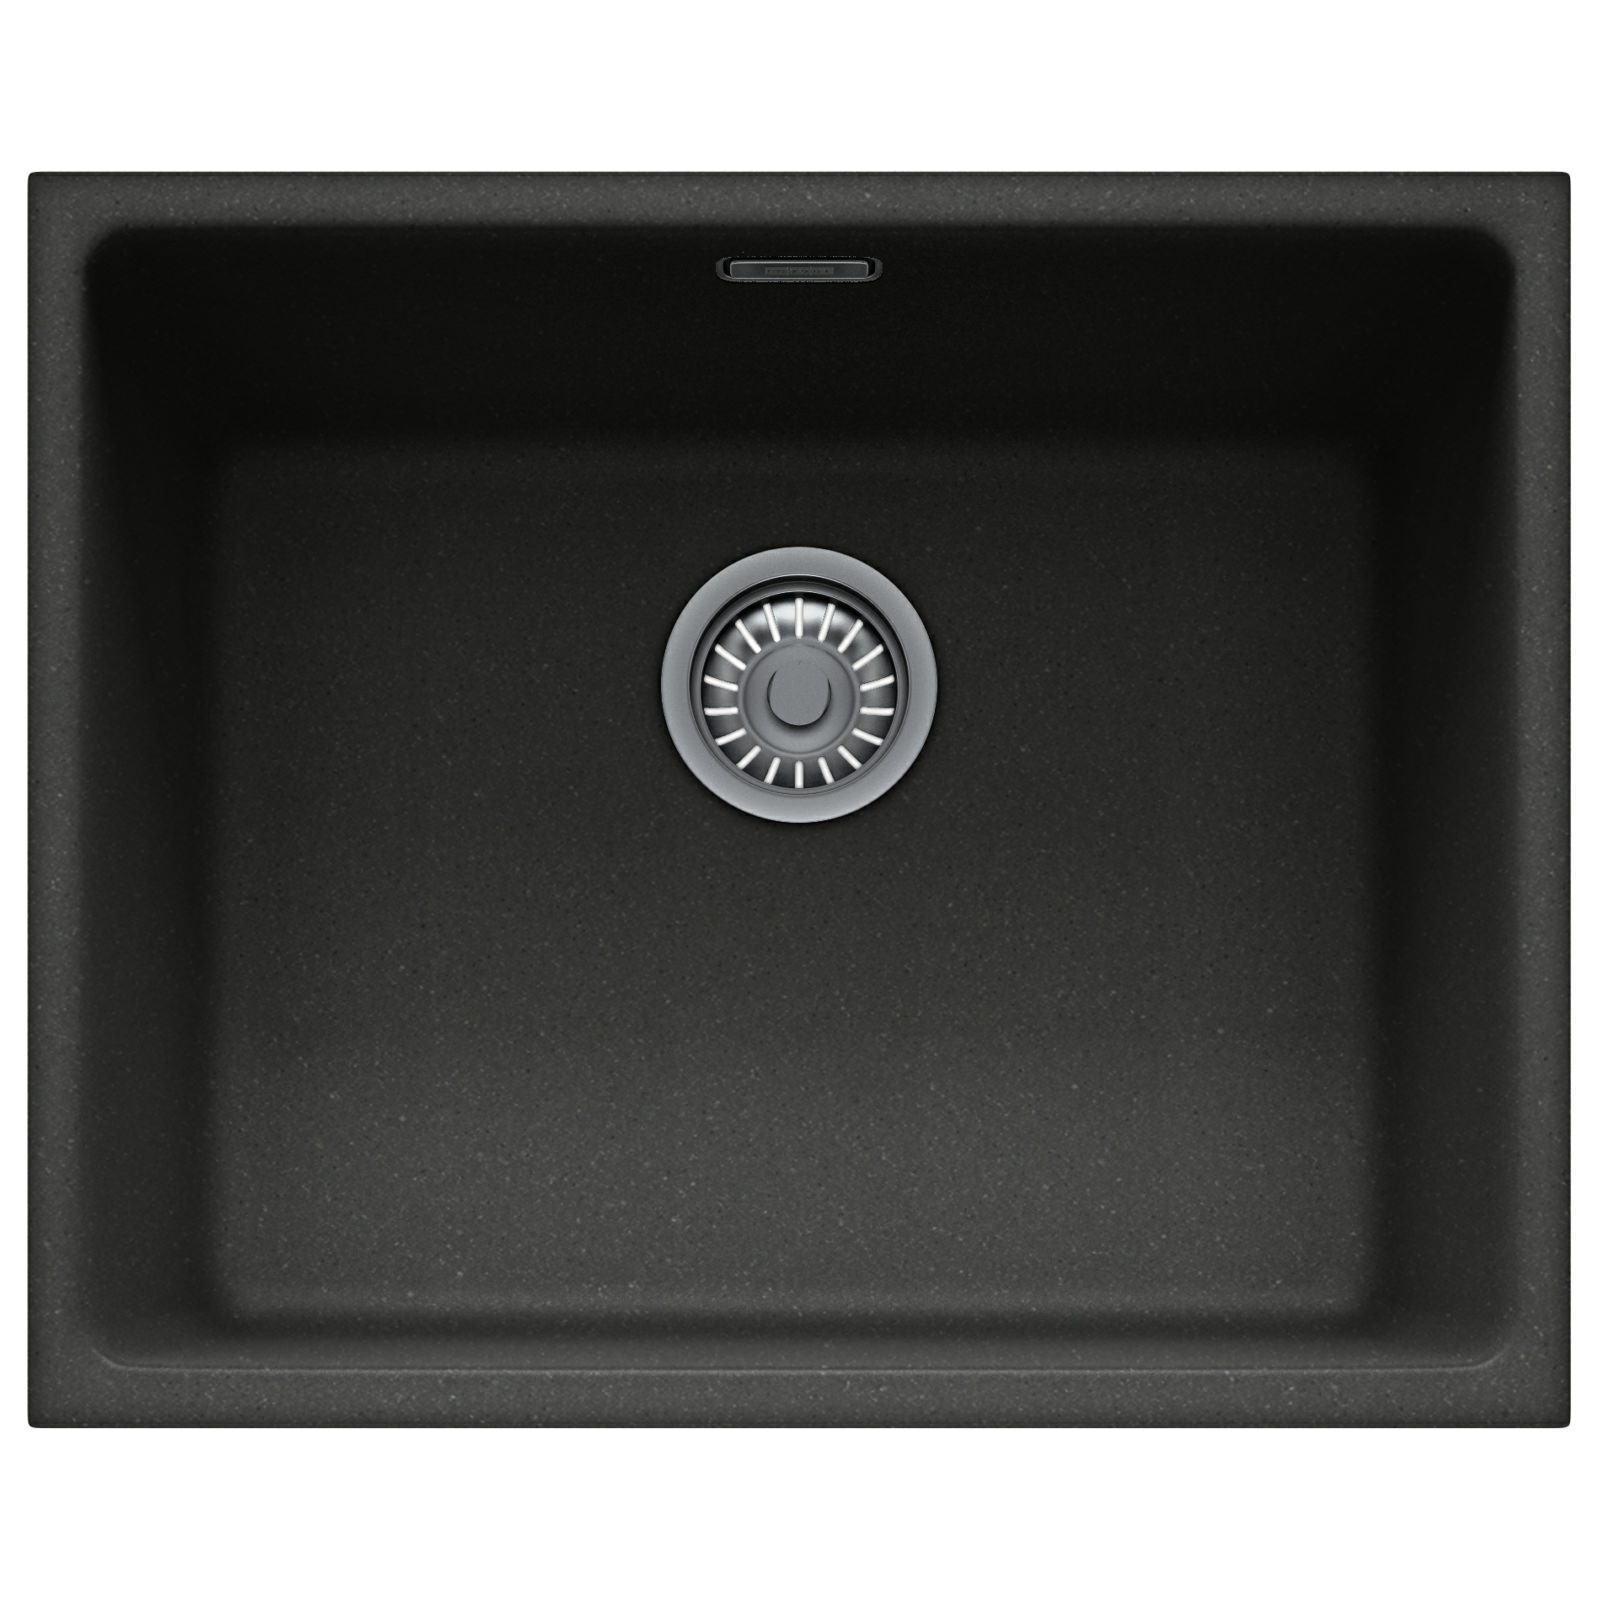 Franke Fragranite Undermount Sink : Franke Kubus KBG 110 50 Fragranite Onyx 1.0 Bowl Undermount Sink 125 ...